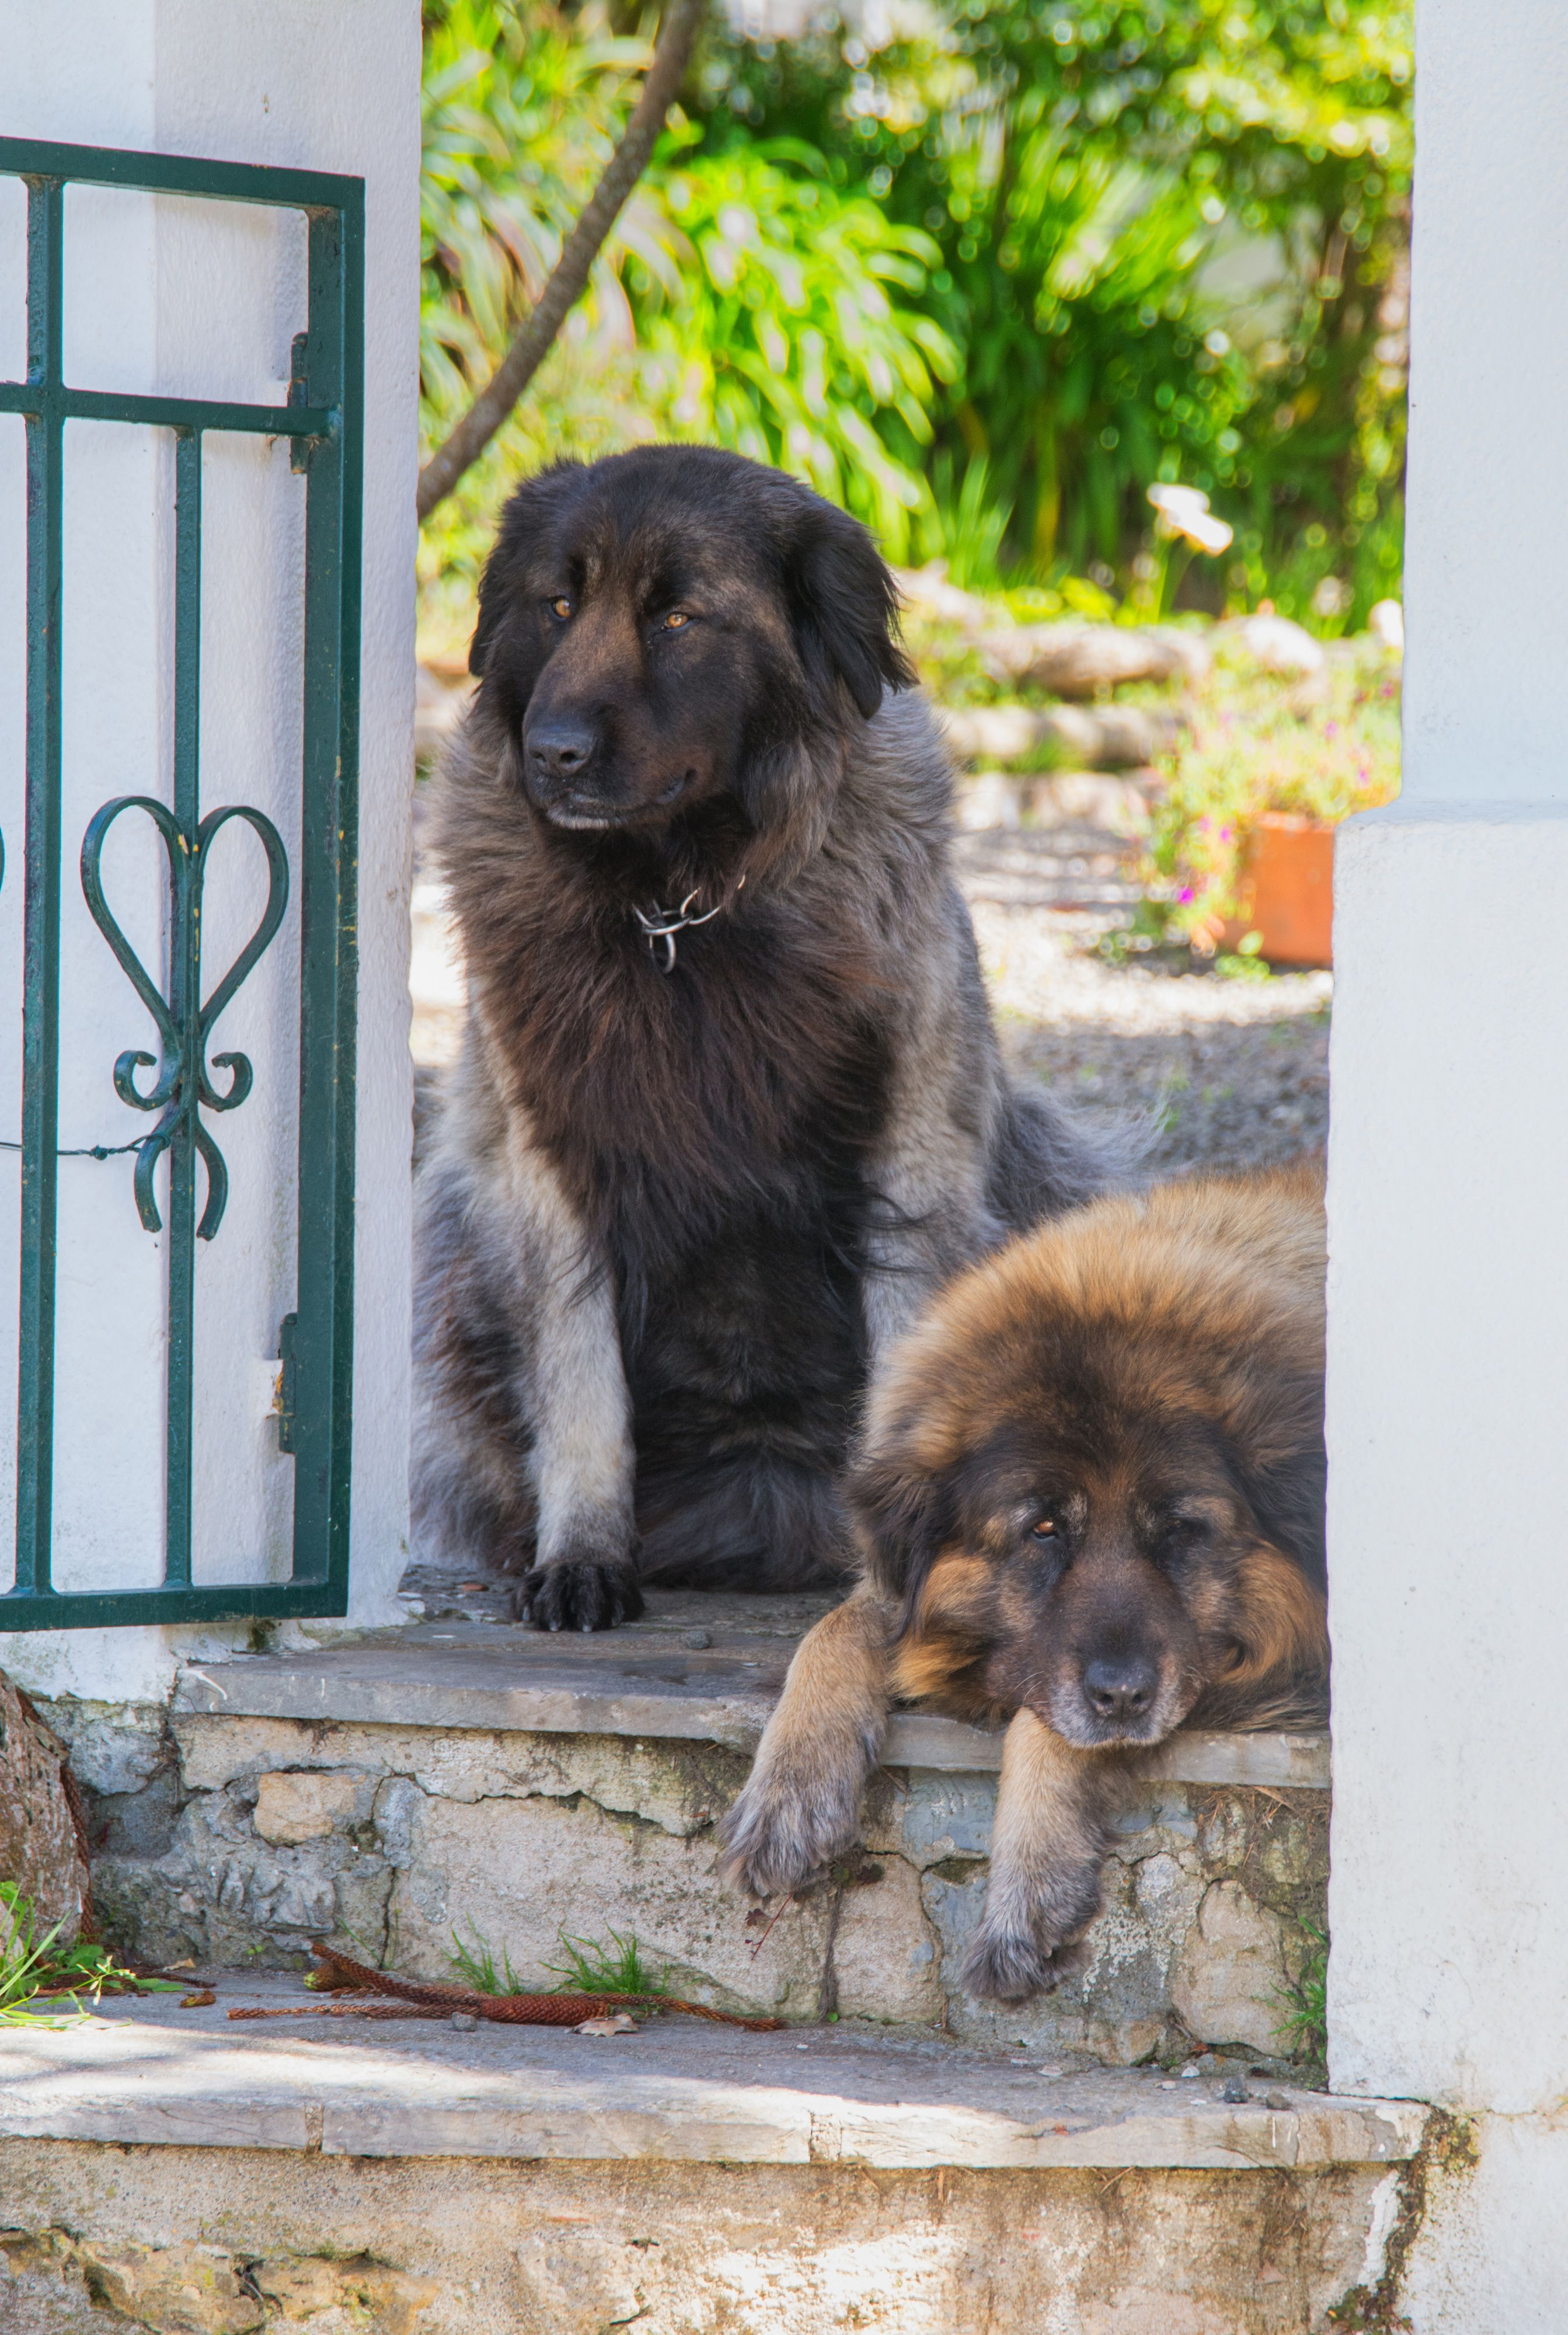 Fullsize Of Most Protective Dogs